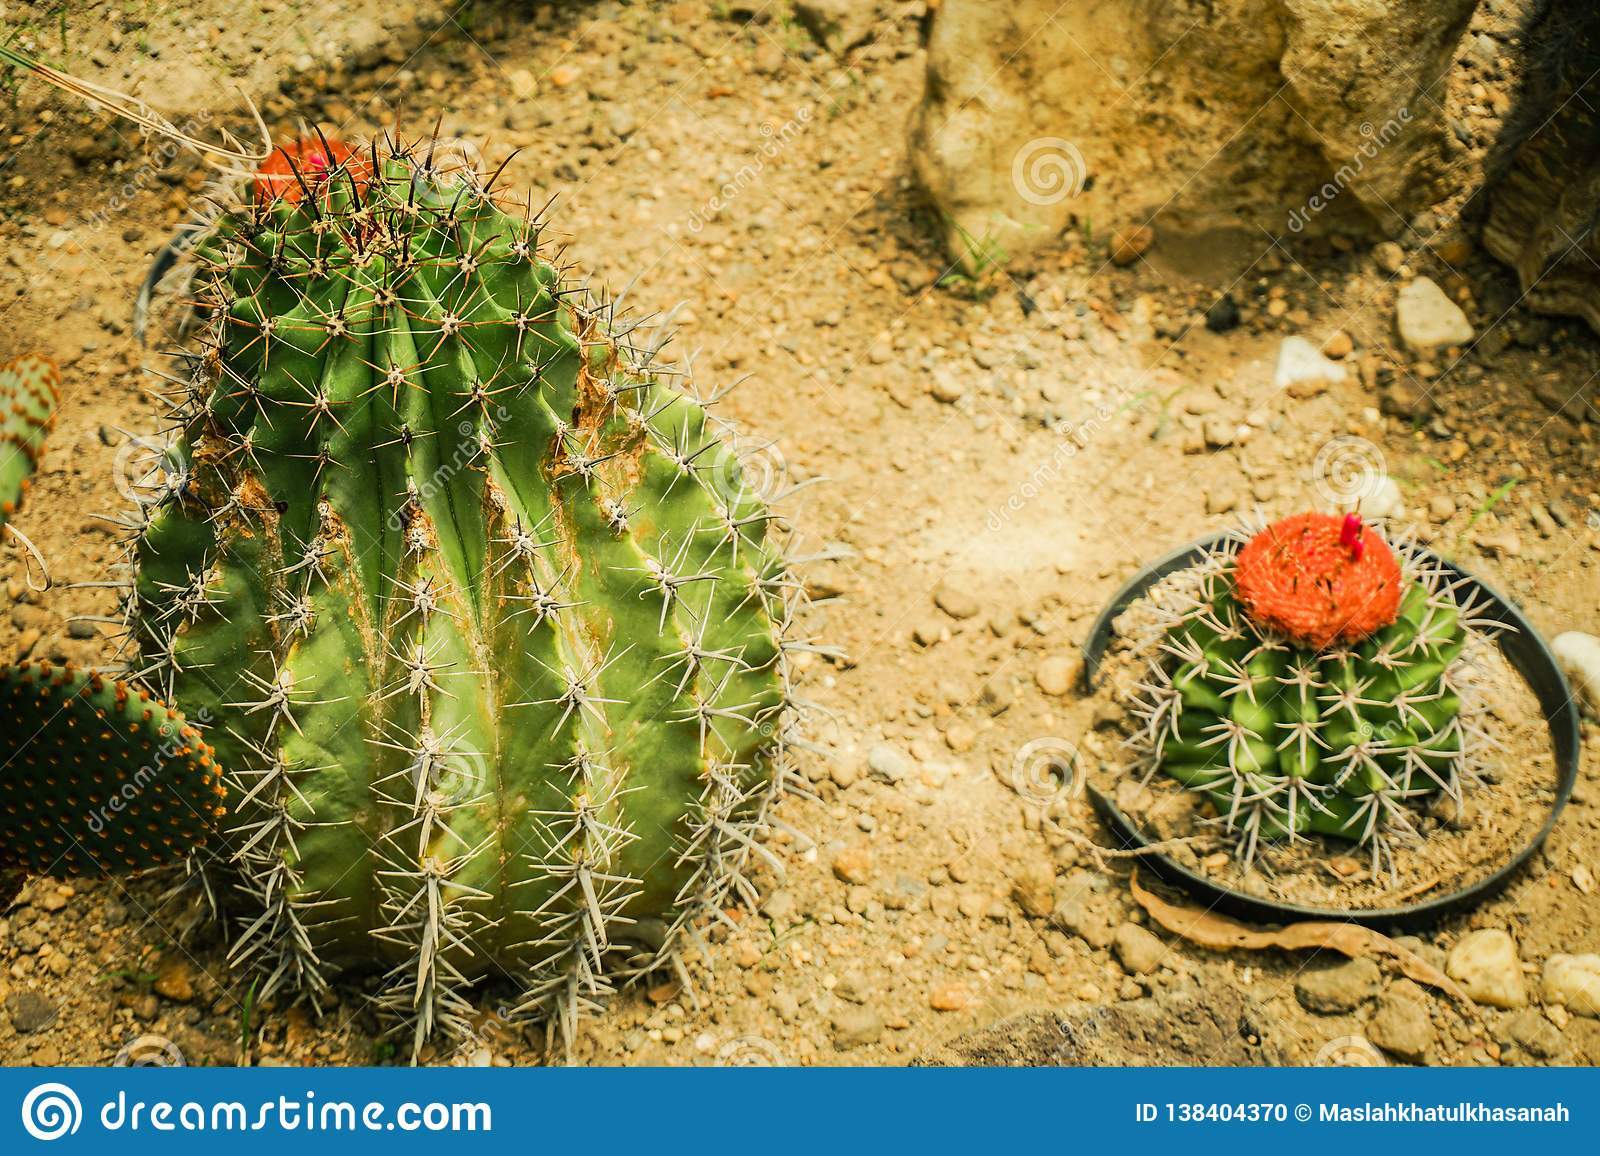 A small cactus rounded with barrel shape and spike with red flower bloom on top - photo bogor